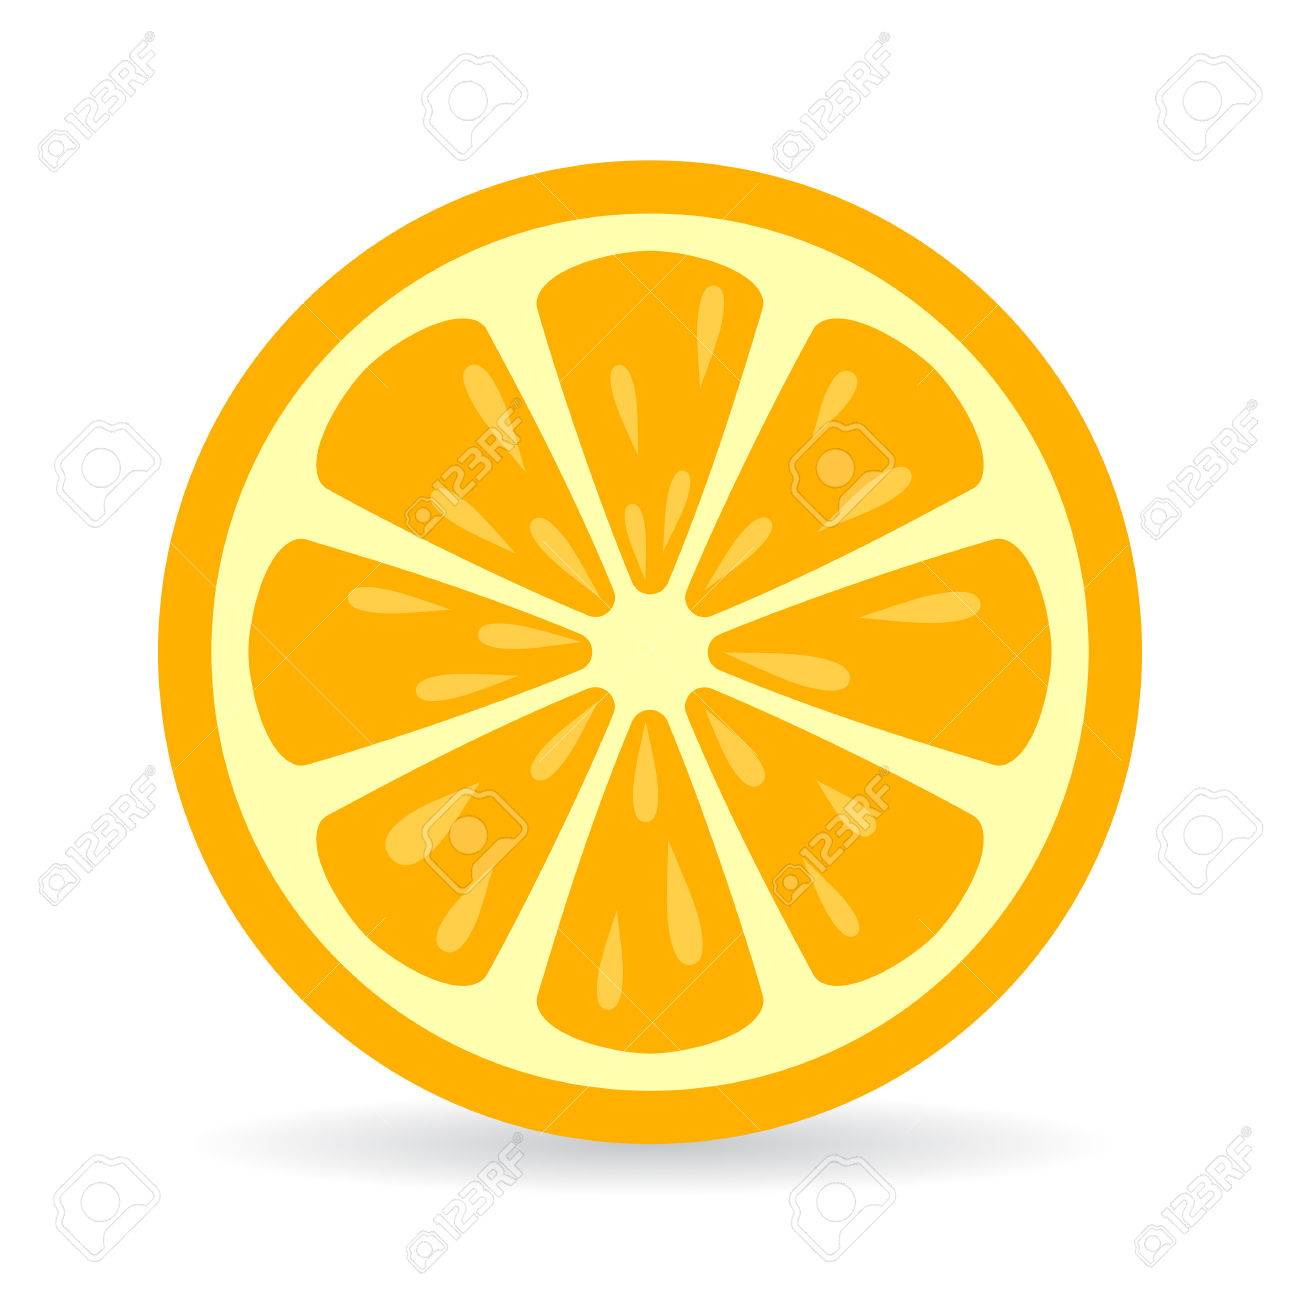 orange slice vector icon royalty free cliparts vectors and stock rh 123rf com orange vector background hd orange vector free